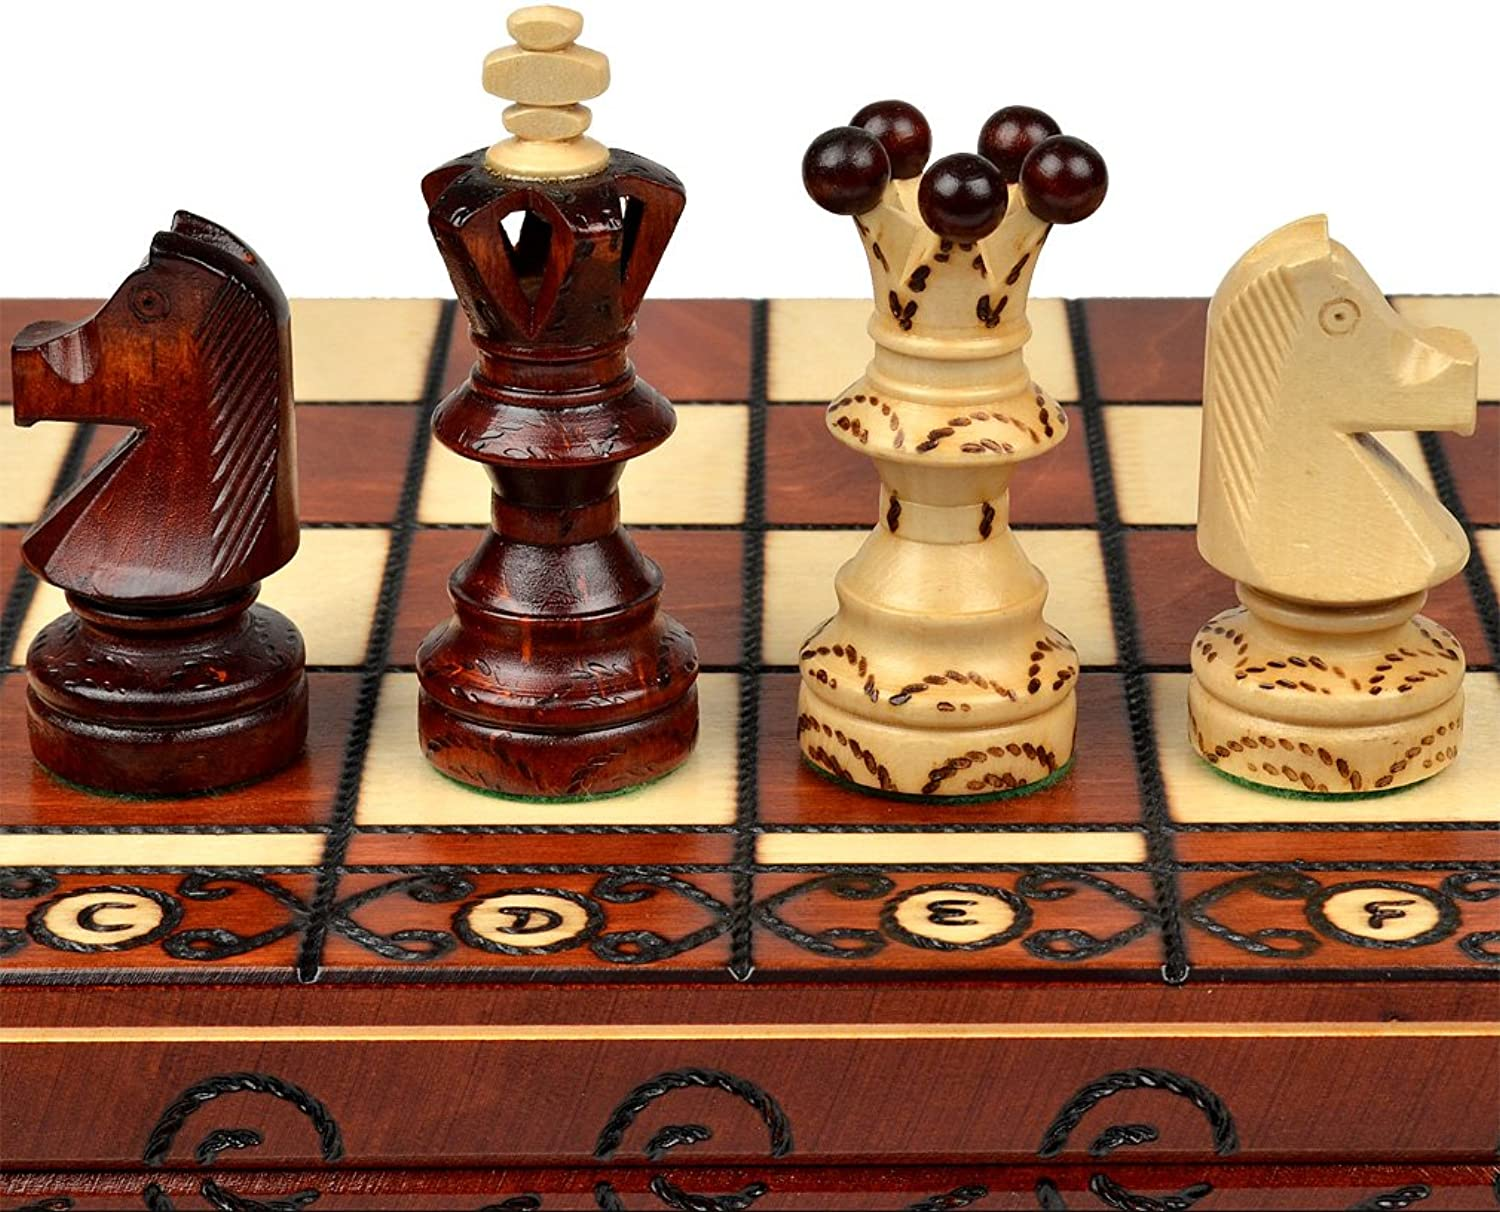 Ambassador European International Chess Set - 21.7 by Sunrise Handicrafts